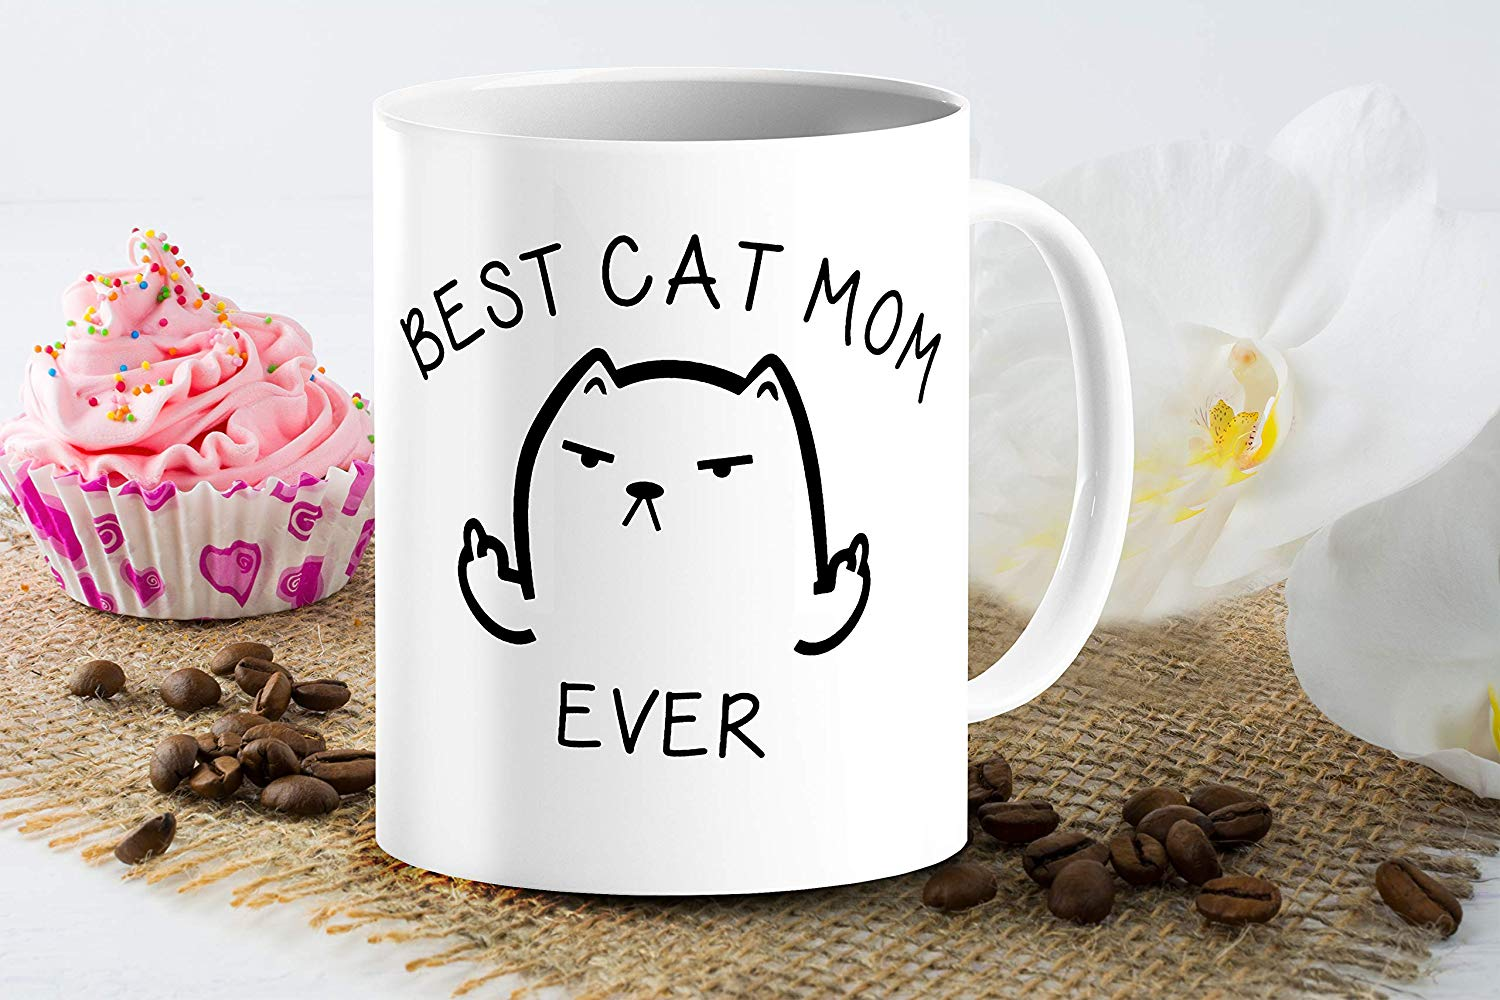 Best Cat Mom Ever Funny Coffee Mug Cat Middle Finger 11 Oz Birthday Gift For MotherMom Or Wife B079FRN7MM 6